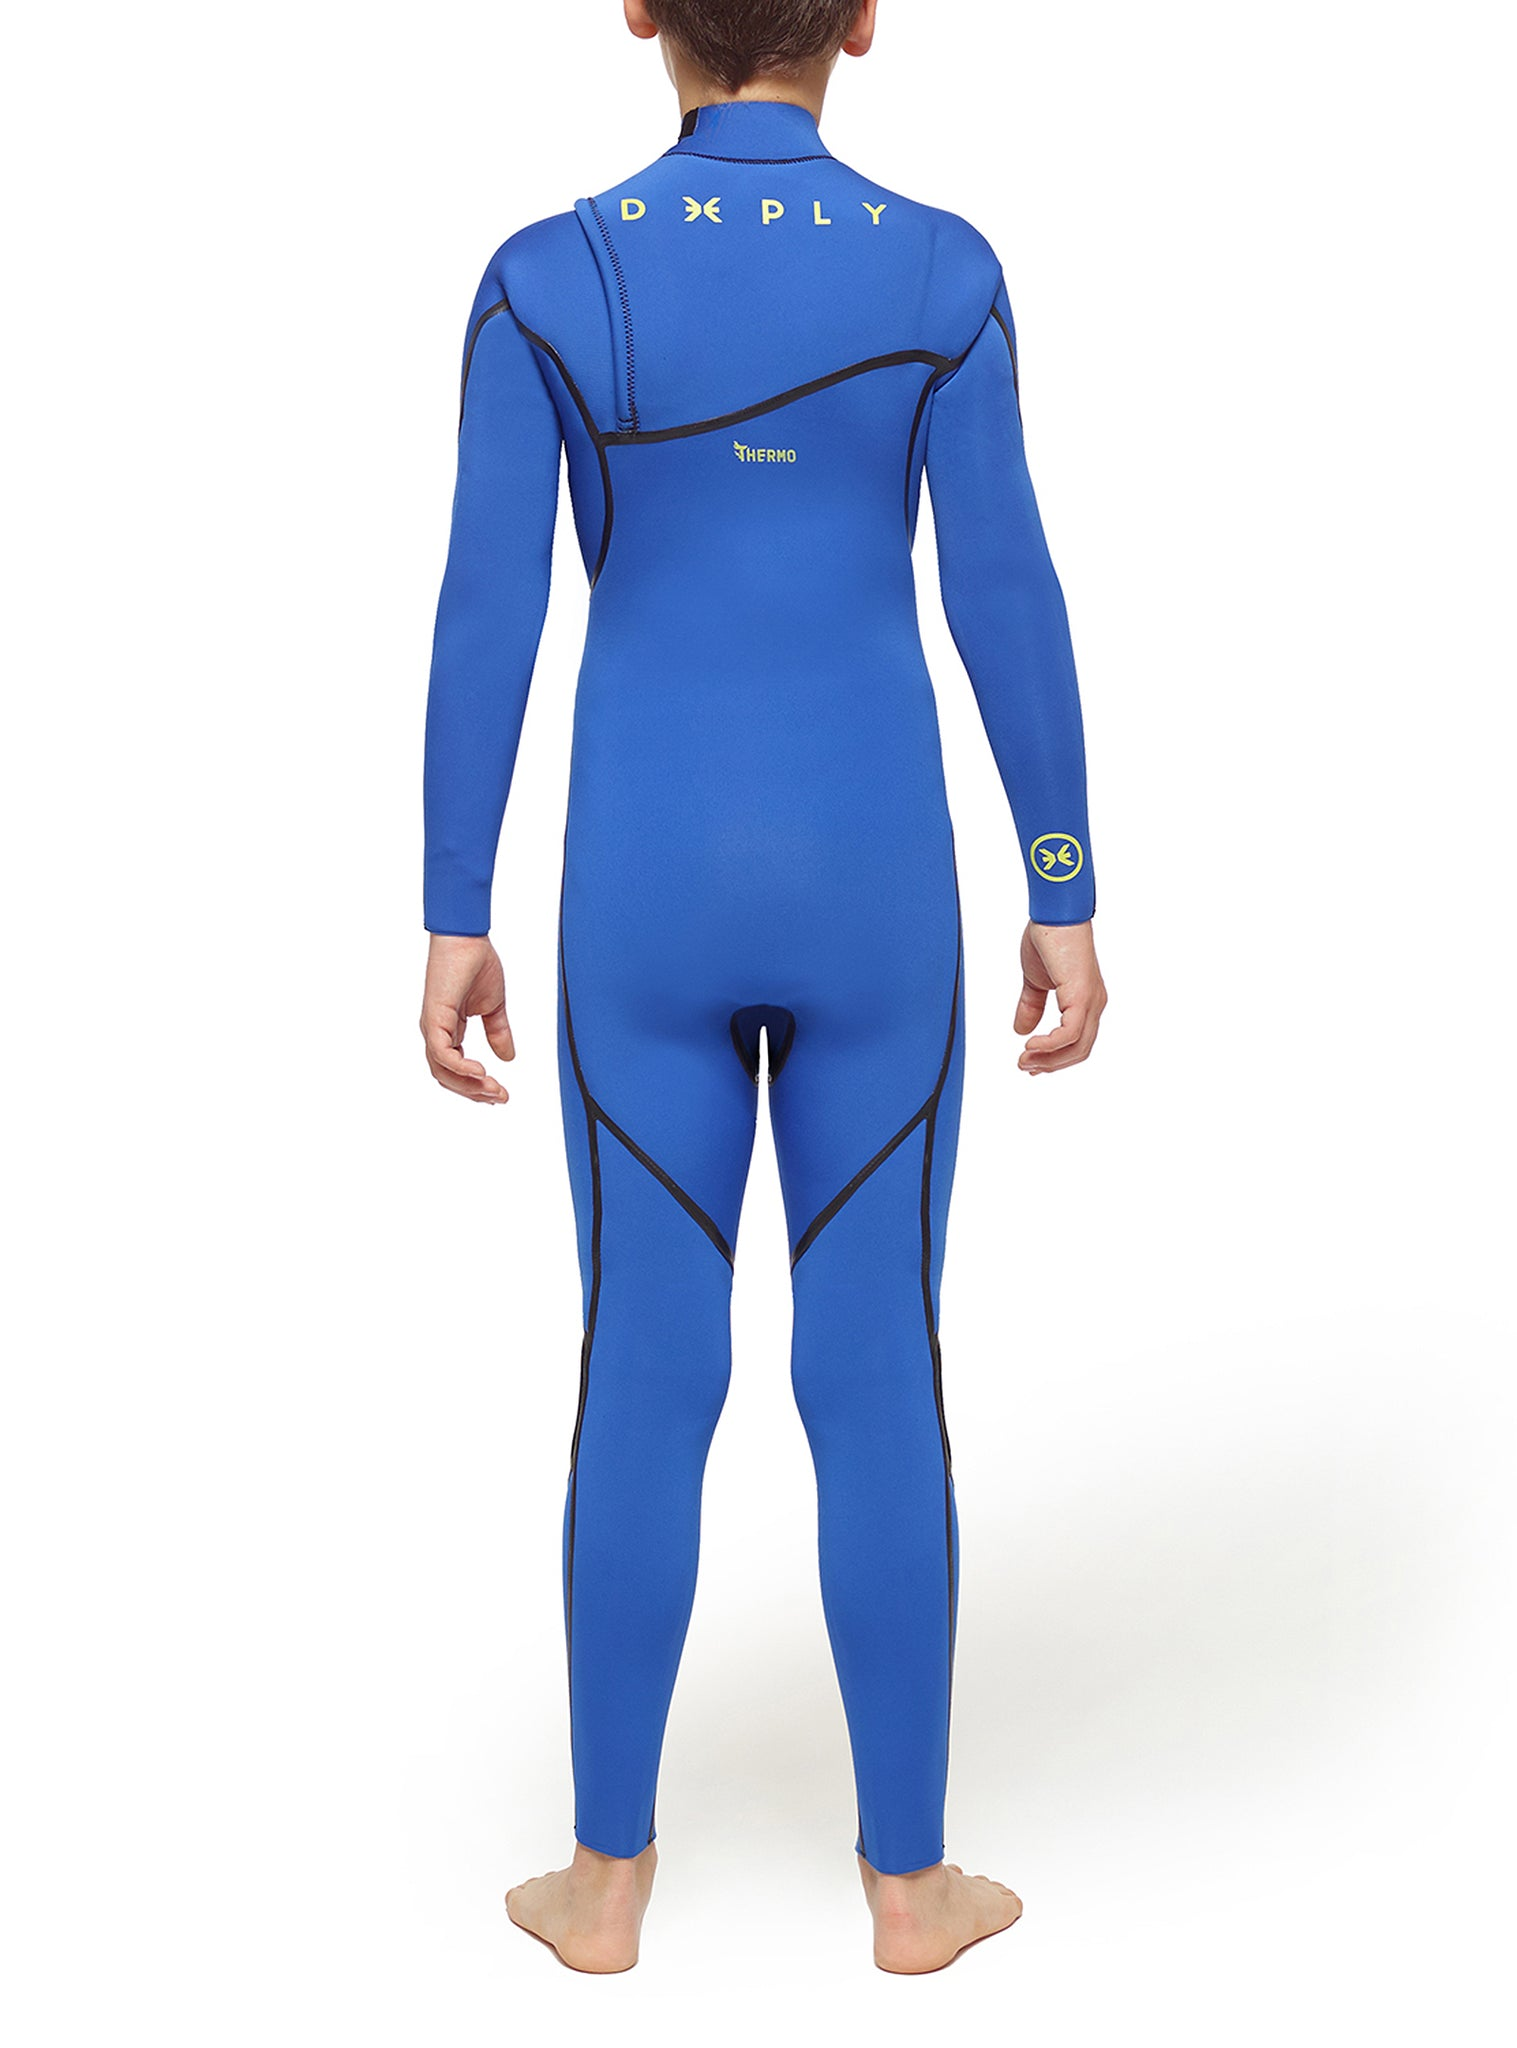 Combinaisons De Surf Junior Performance 4/3 Zipperless Bleu Foncé